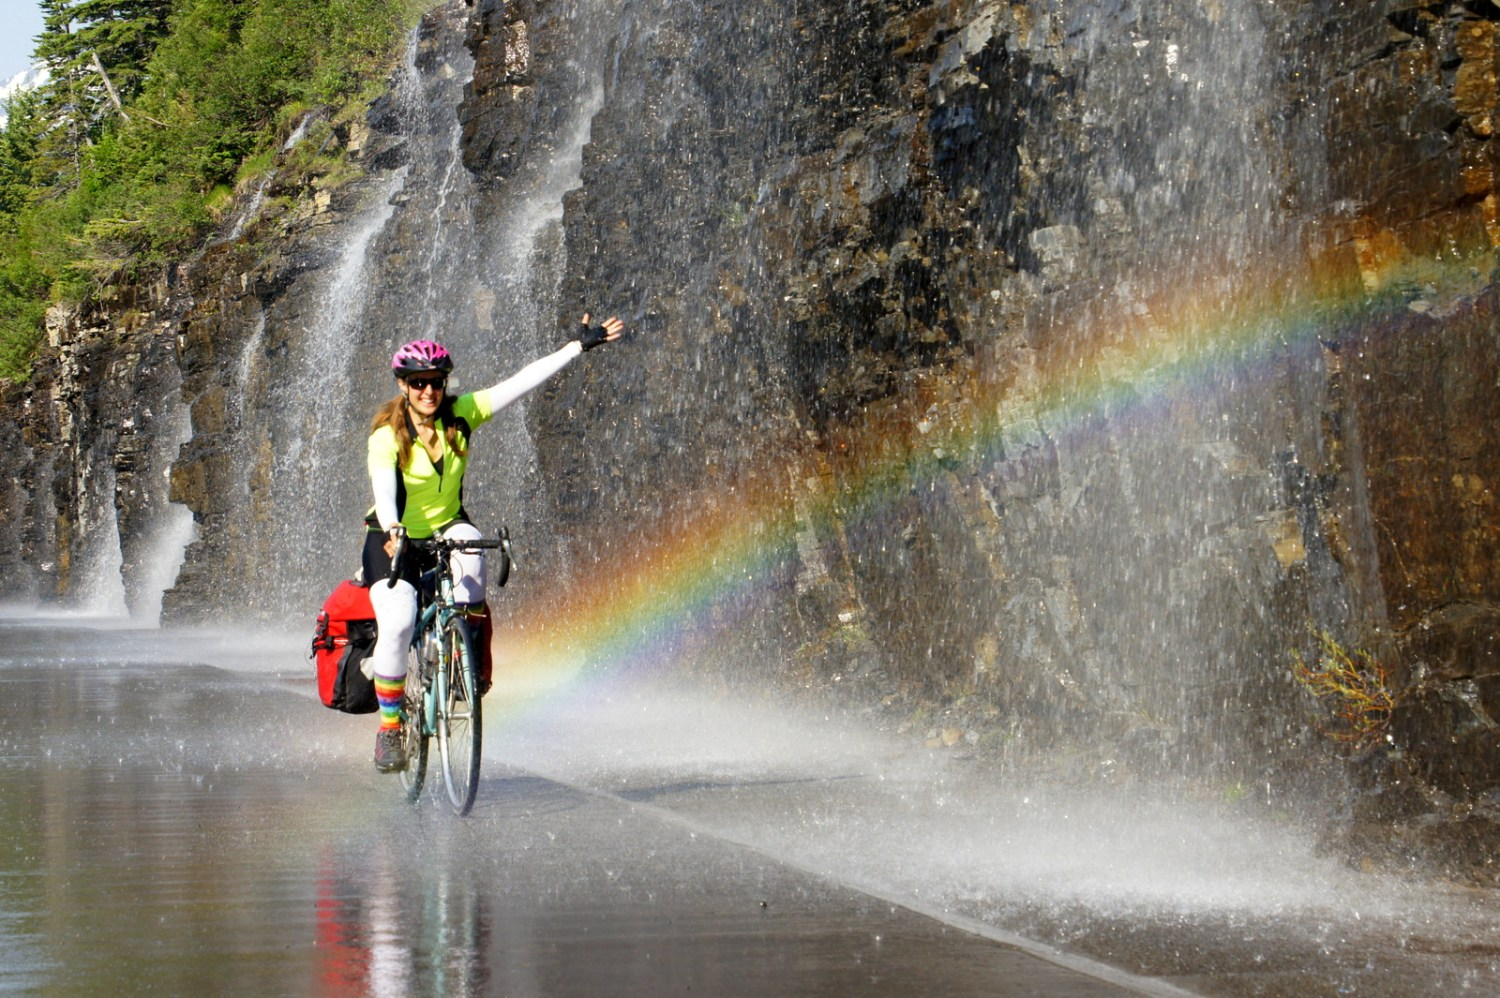 My pot of gold at the end of a rainbow! Riding next to Weeping Wall in Glacier on Going-to-the-Sun Road.